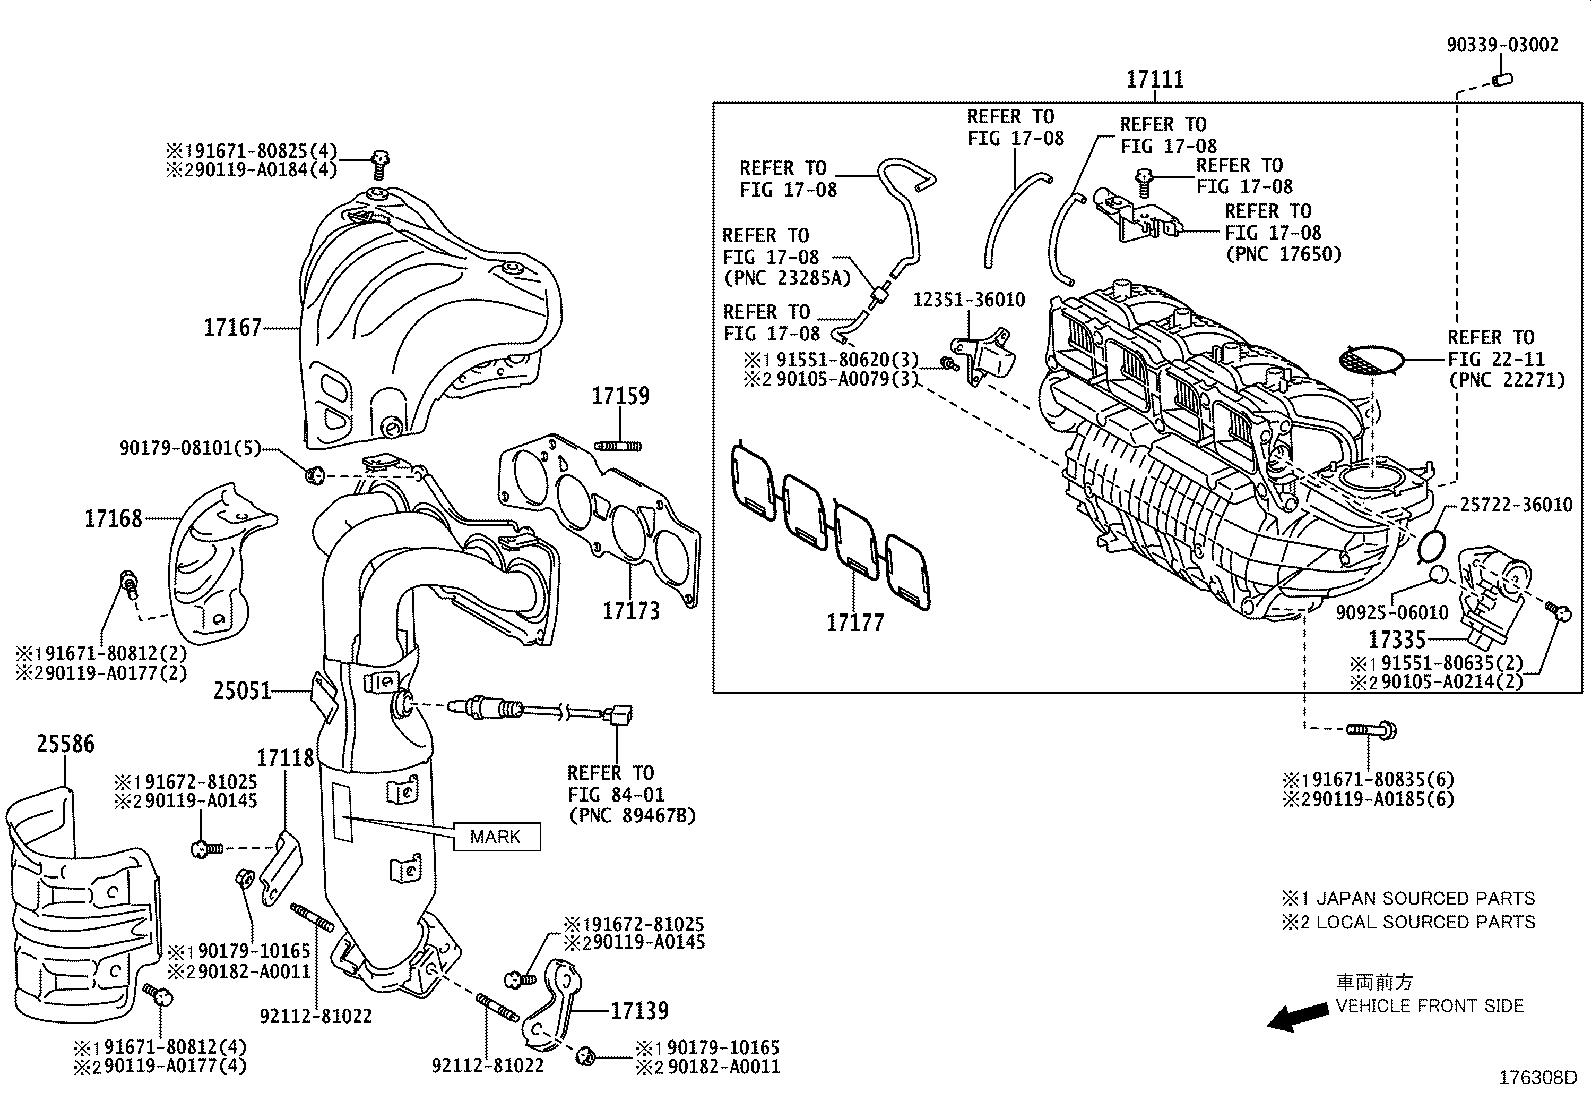 Toyota Venza Manifold Sub Assembly Exhaust Left Engine